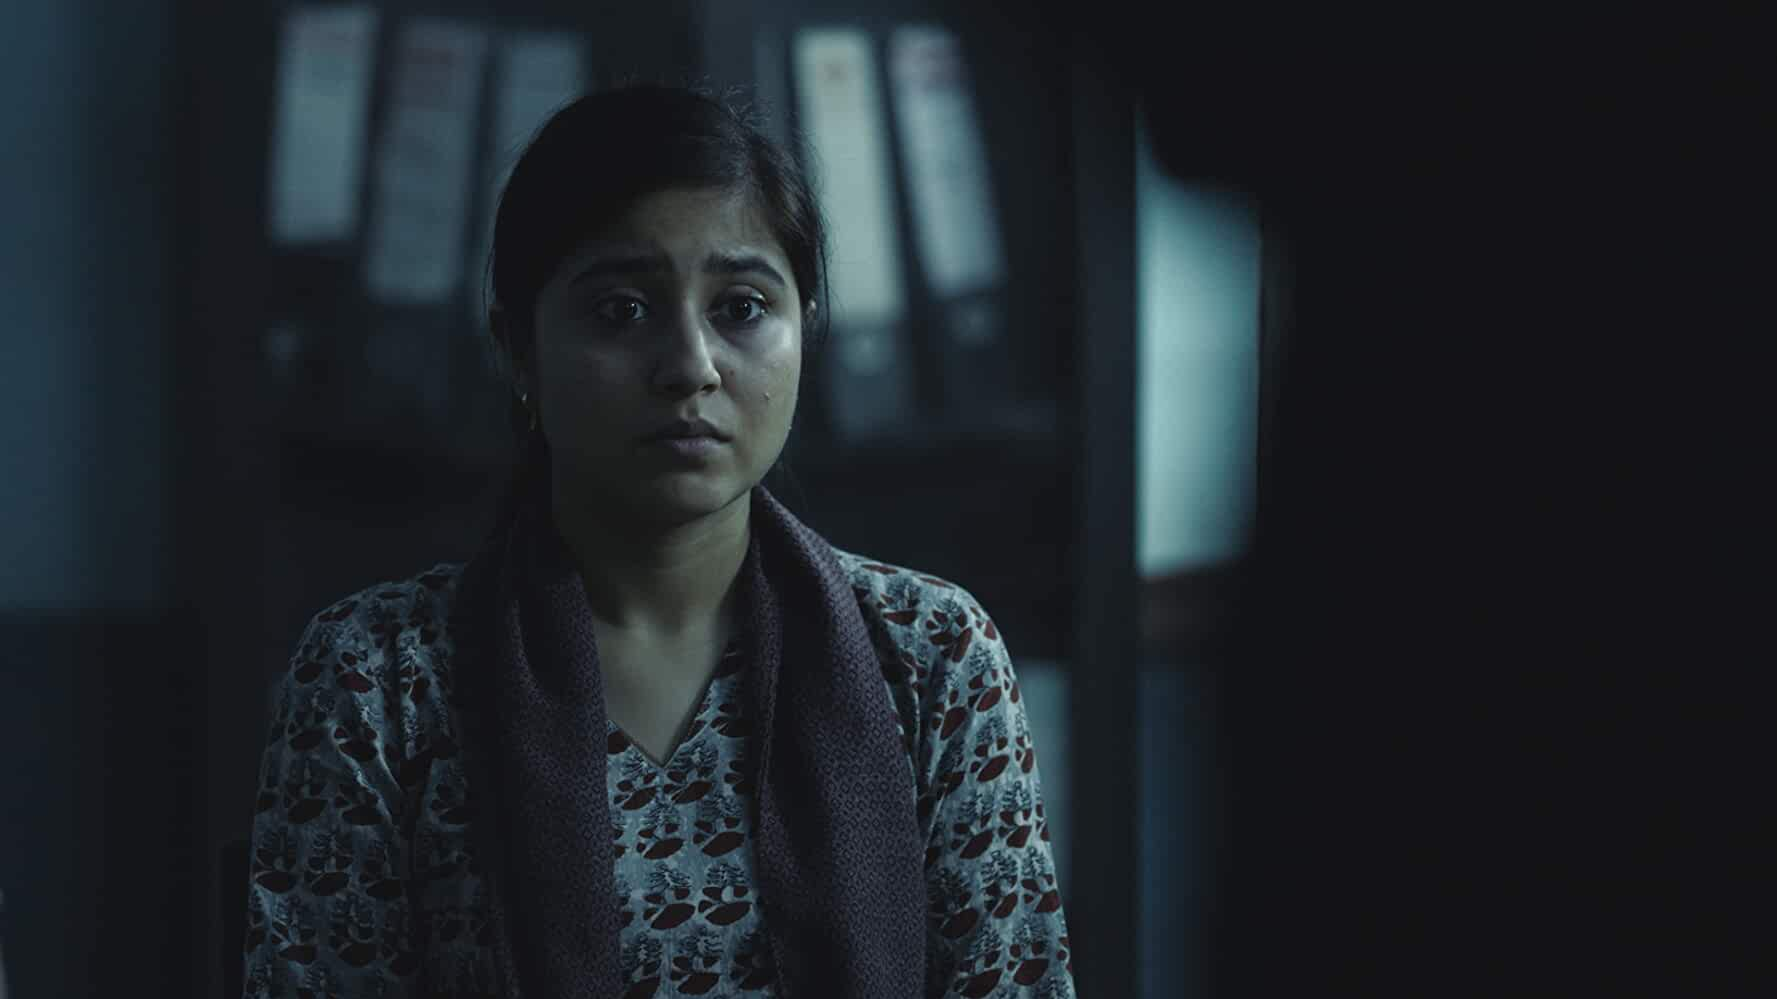 Shweta Tripathi in In-conclusion (2019)